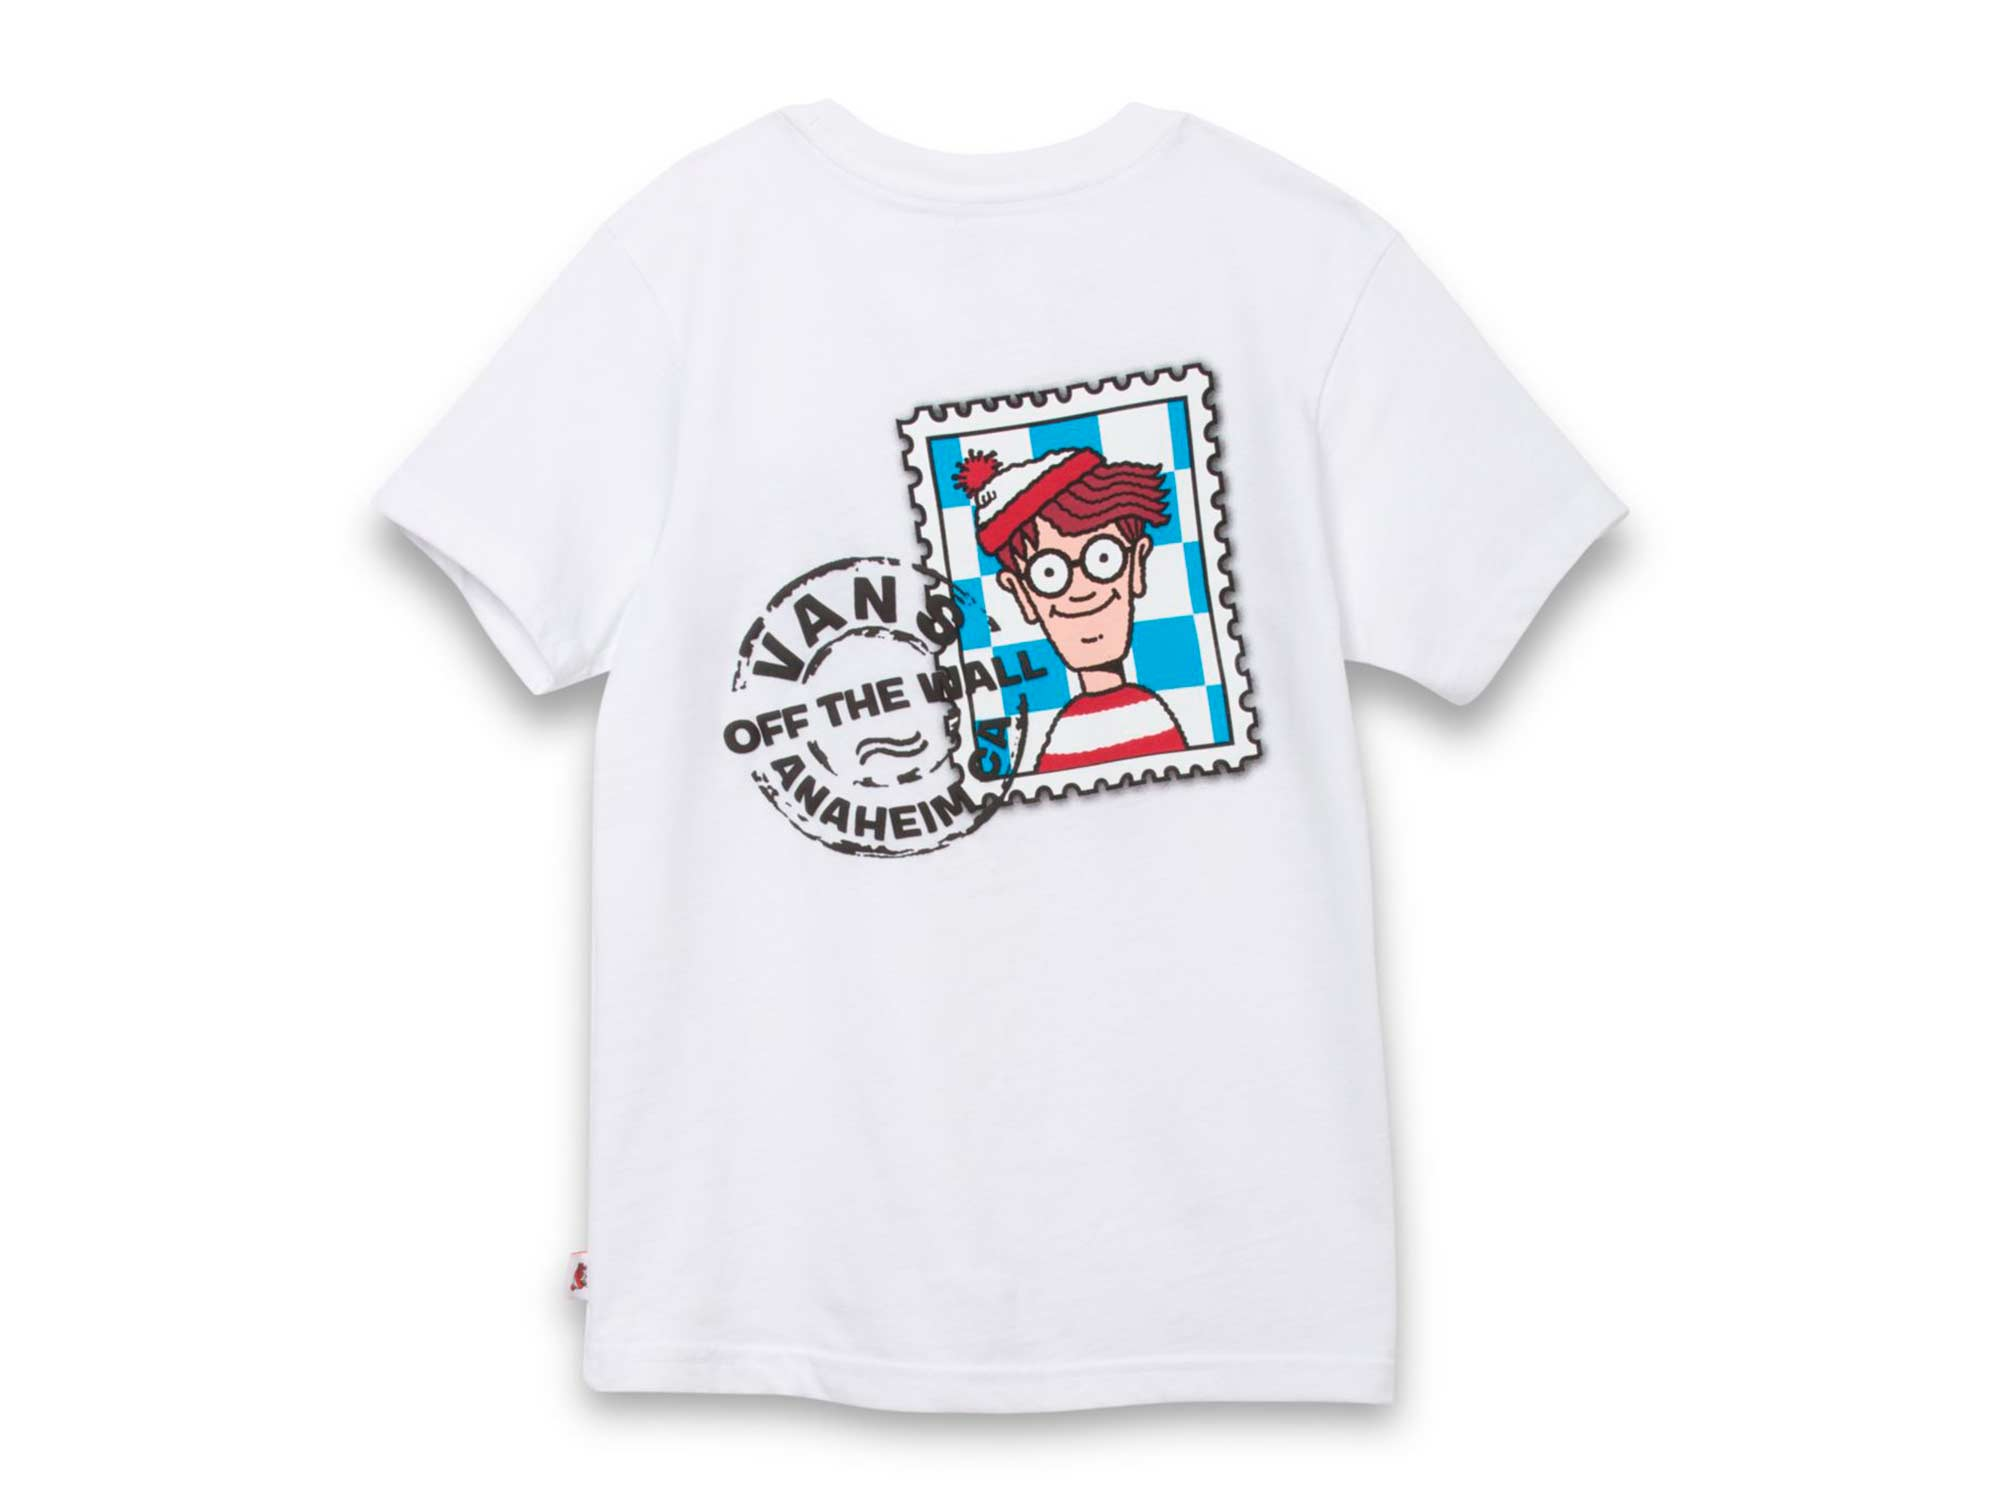 Polera Vans X Wheres Wally Niño Blanco